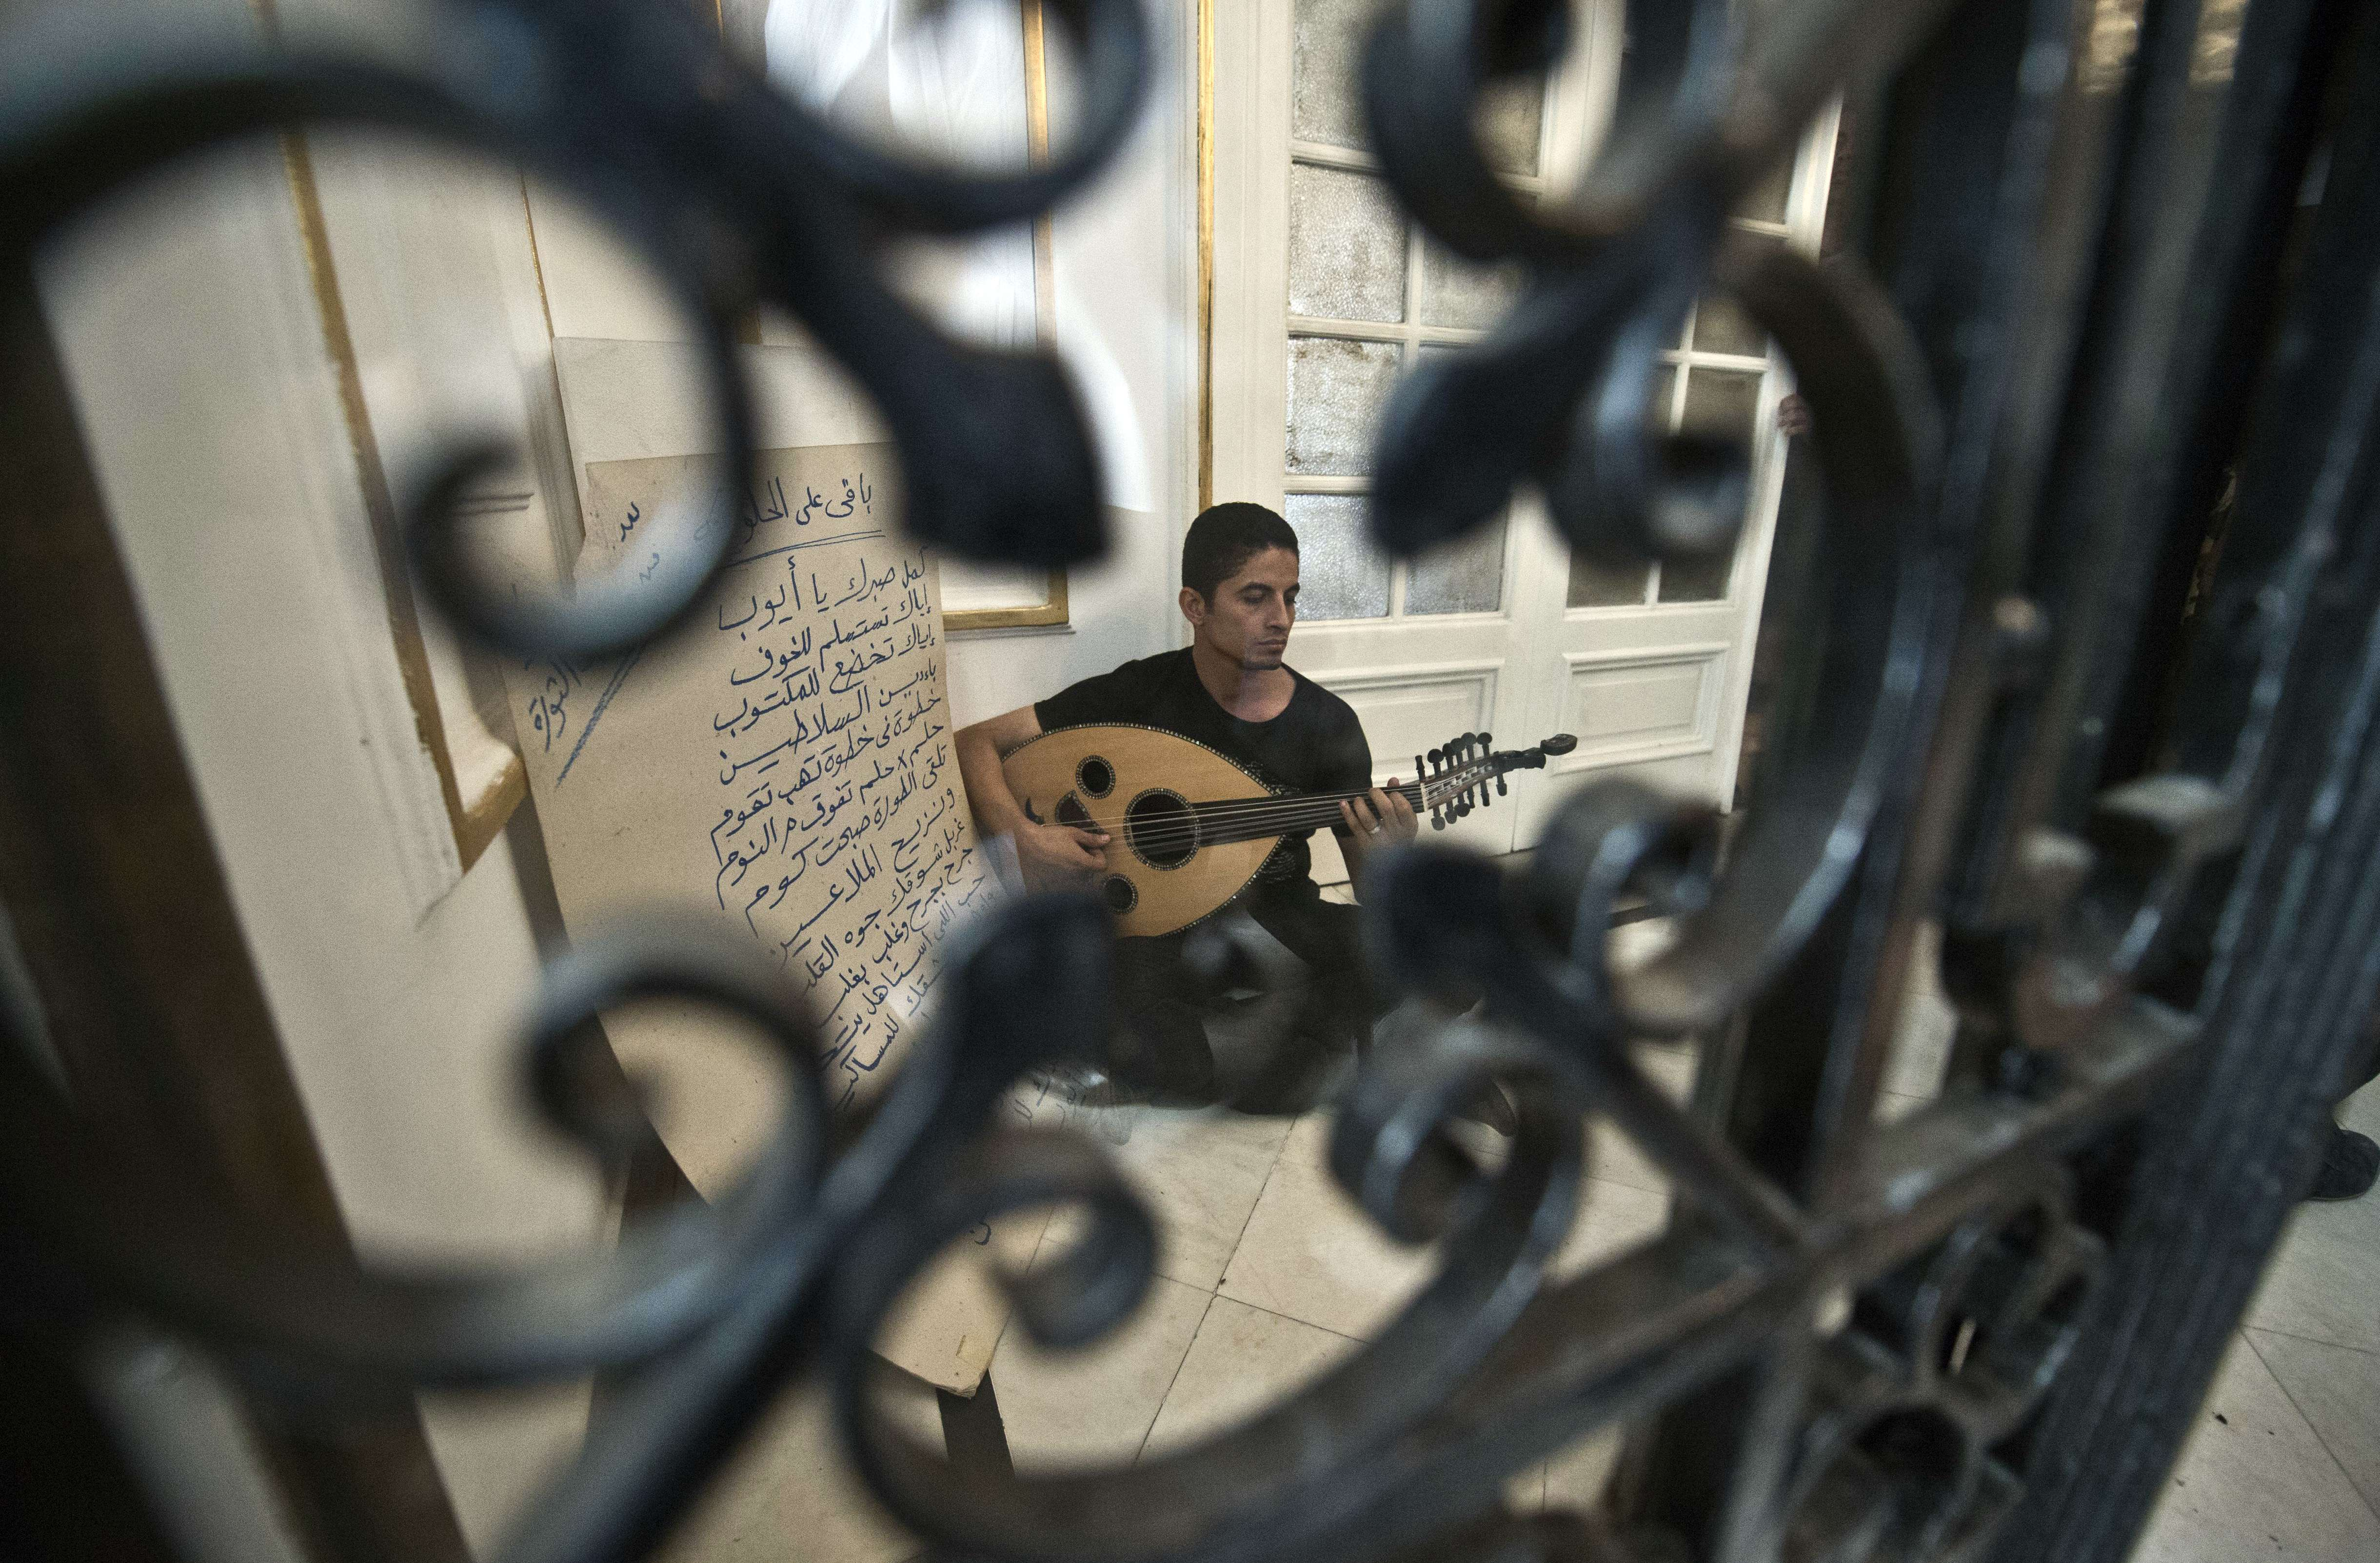 An Egyptian artist plays the Oud as demonstrators perform a sit-in at the office of culture minister, Alaa Abdelfattah, in Cairo on June 6, 2013, calling for his resignation. (AFP Photo)